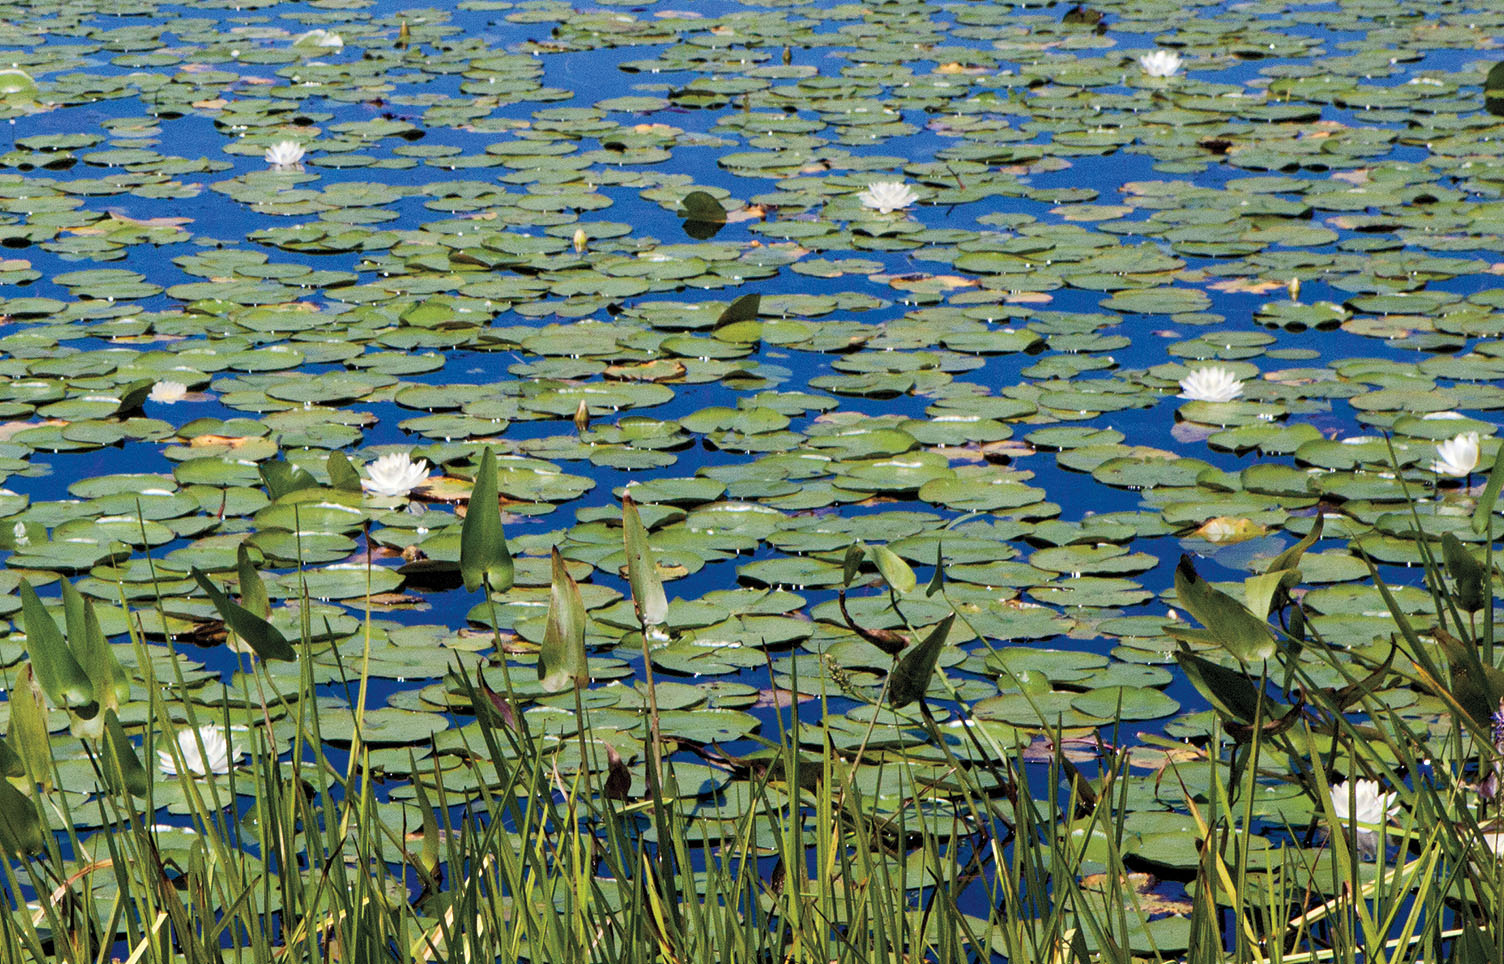 A photo of water lilies in Paramecium Pond.